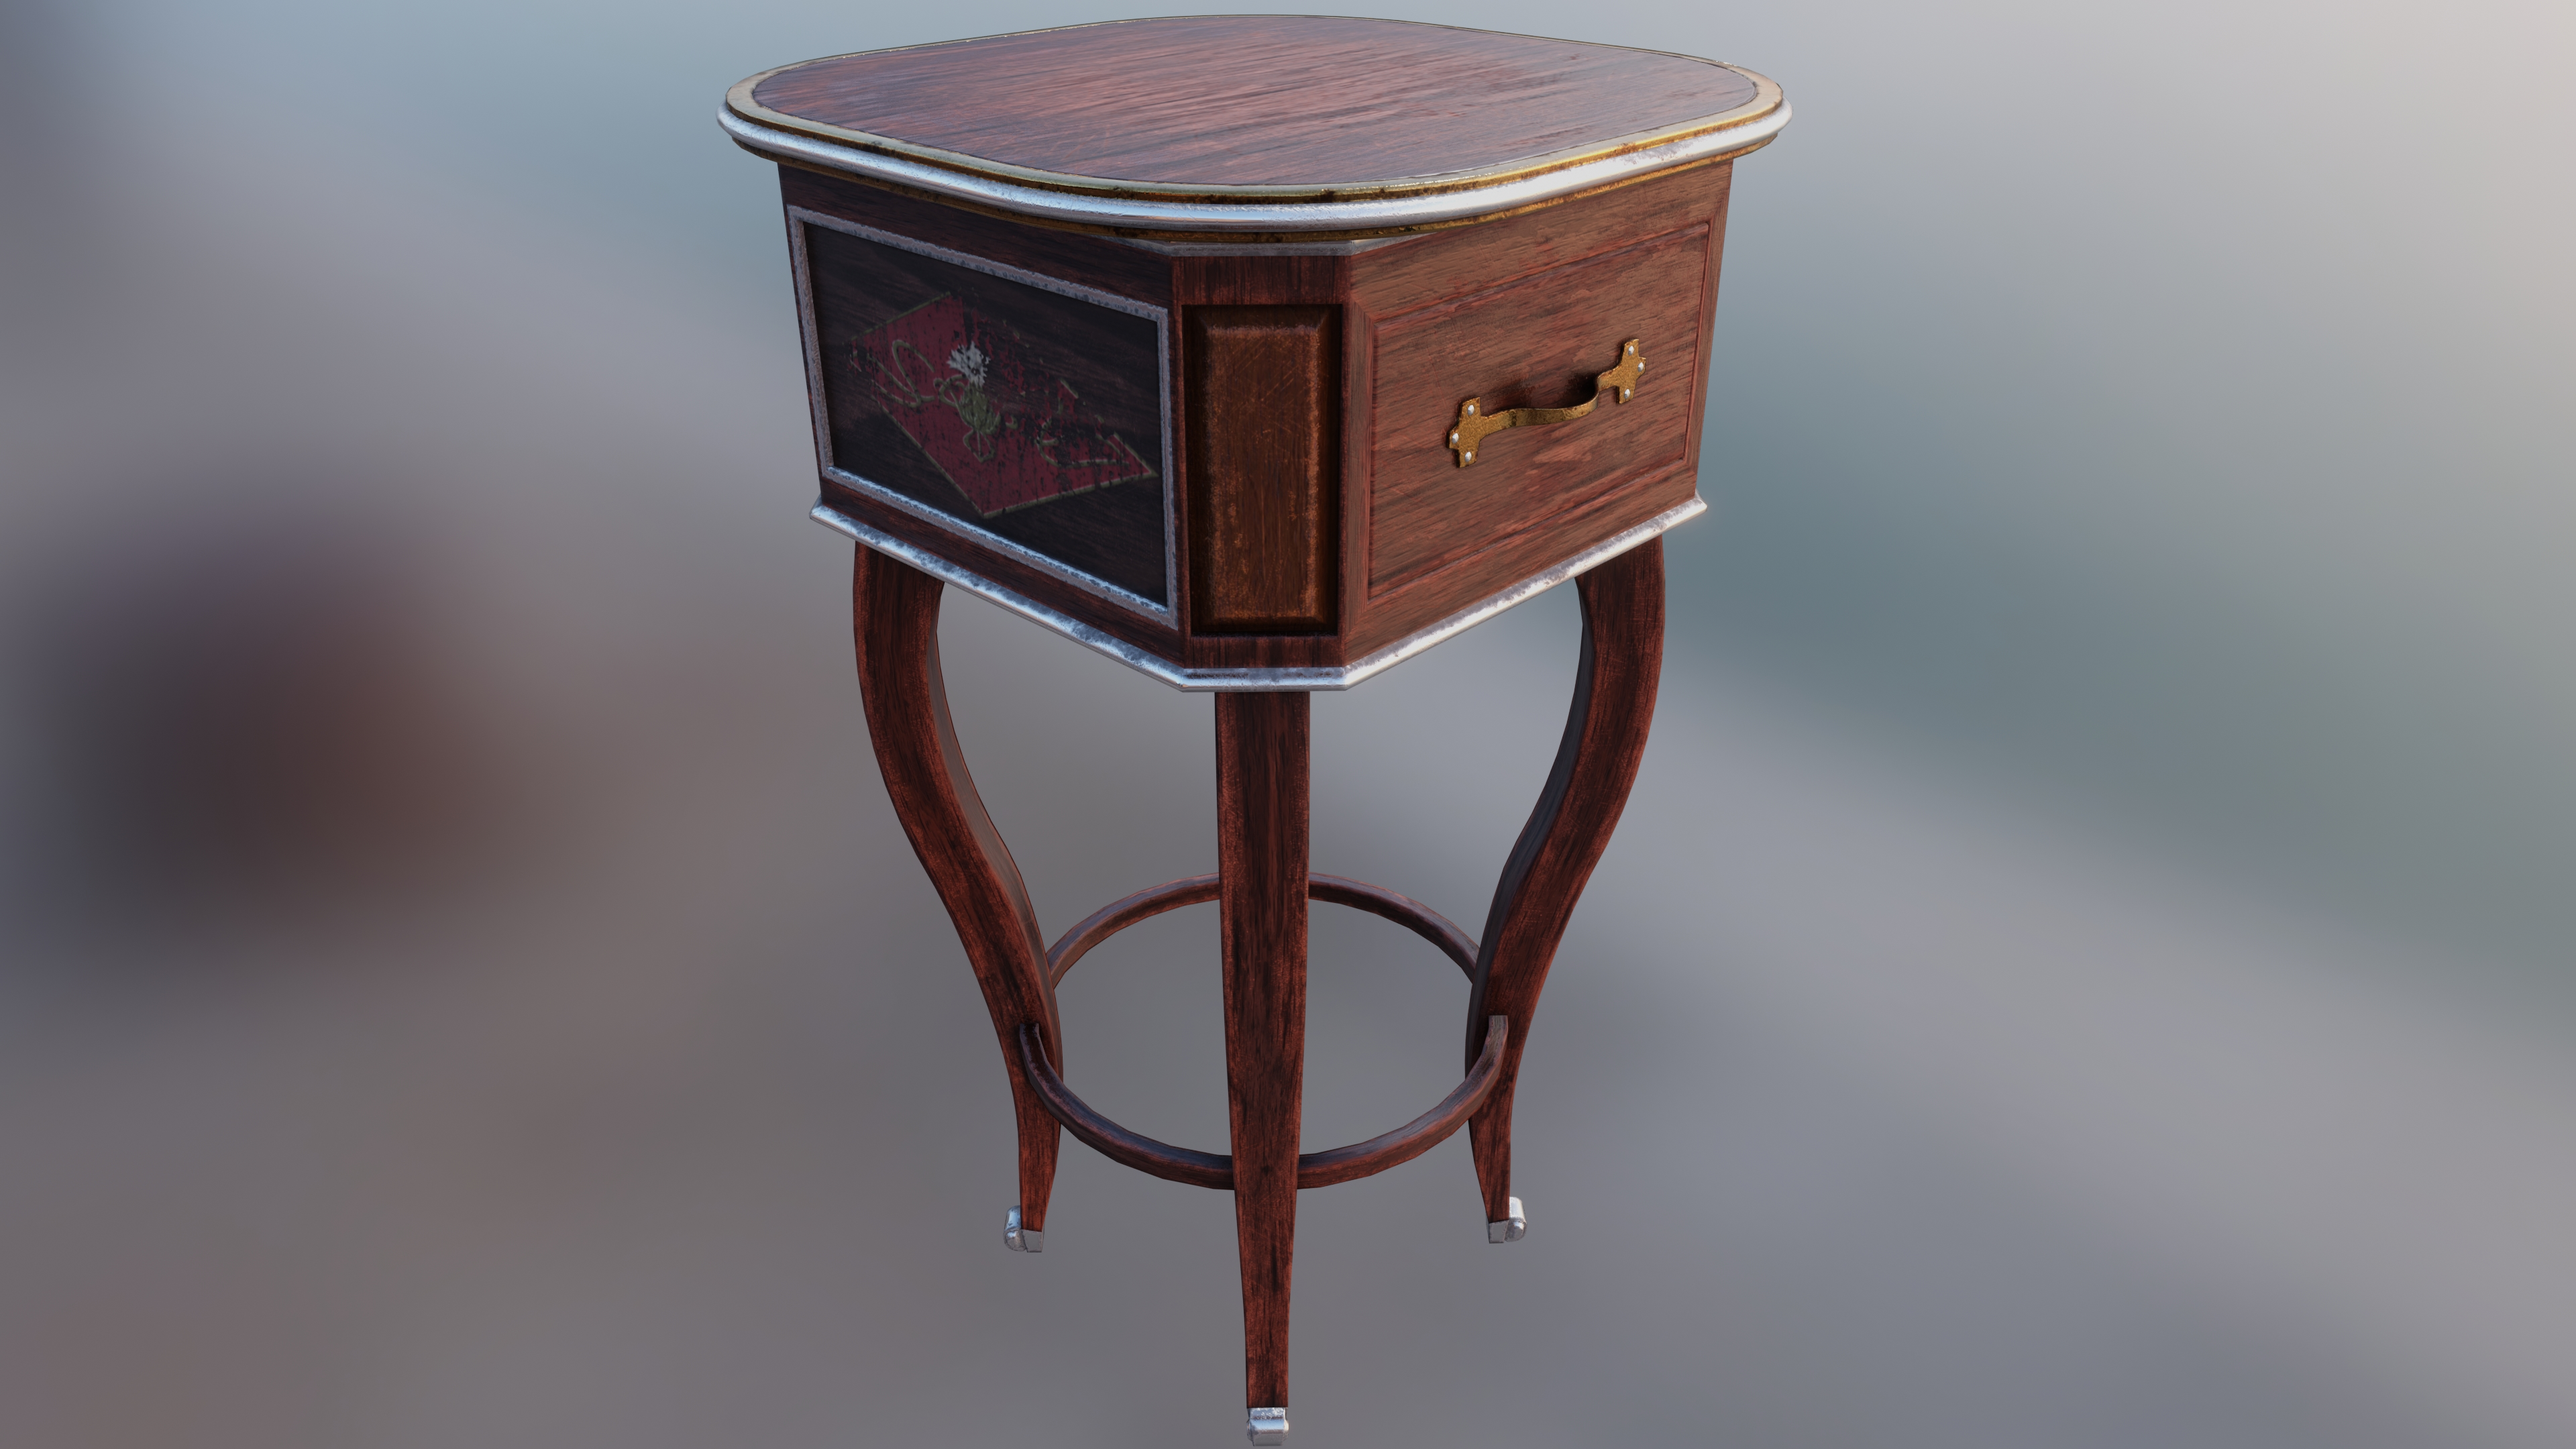 Stewarts Antique French Table preview image 1